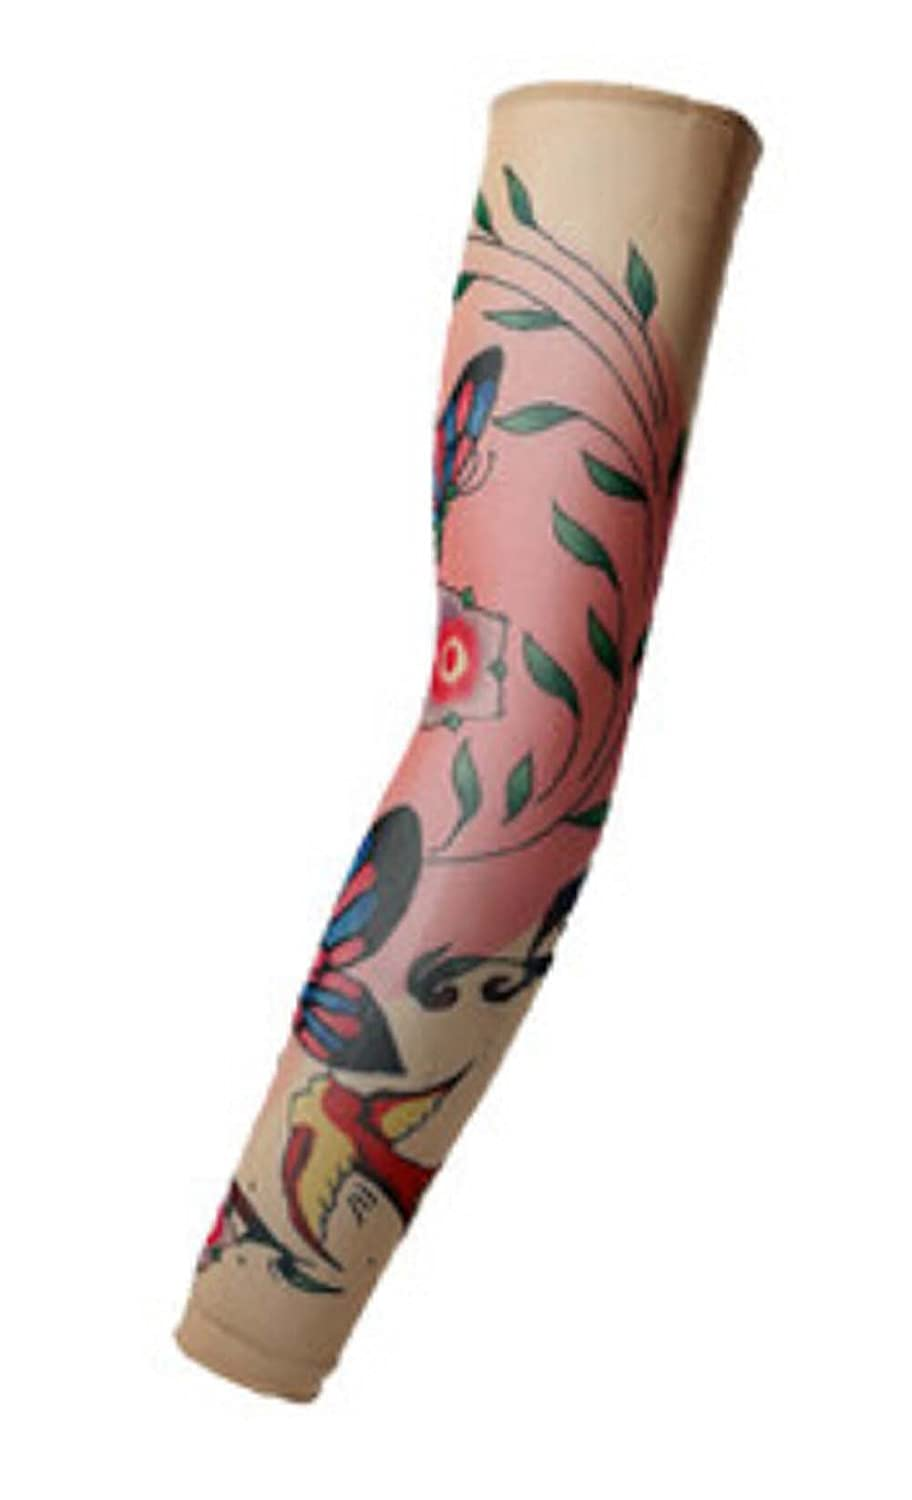 Butterfly Tattoo Cycling Running Arm Warmers Cool Summer Arm Pro Arm Sleeves, M PANDA SUPERSTORE